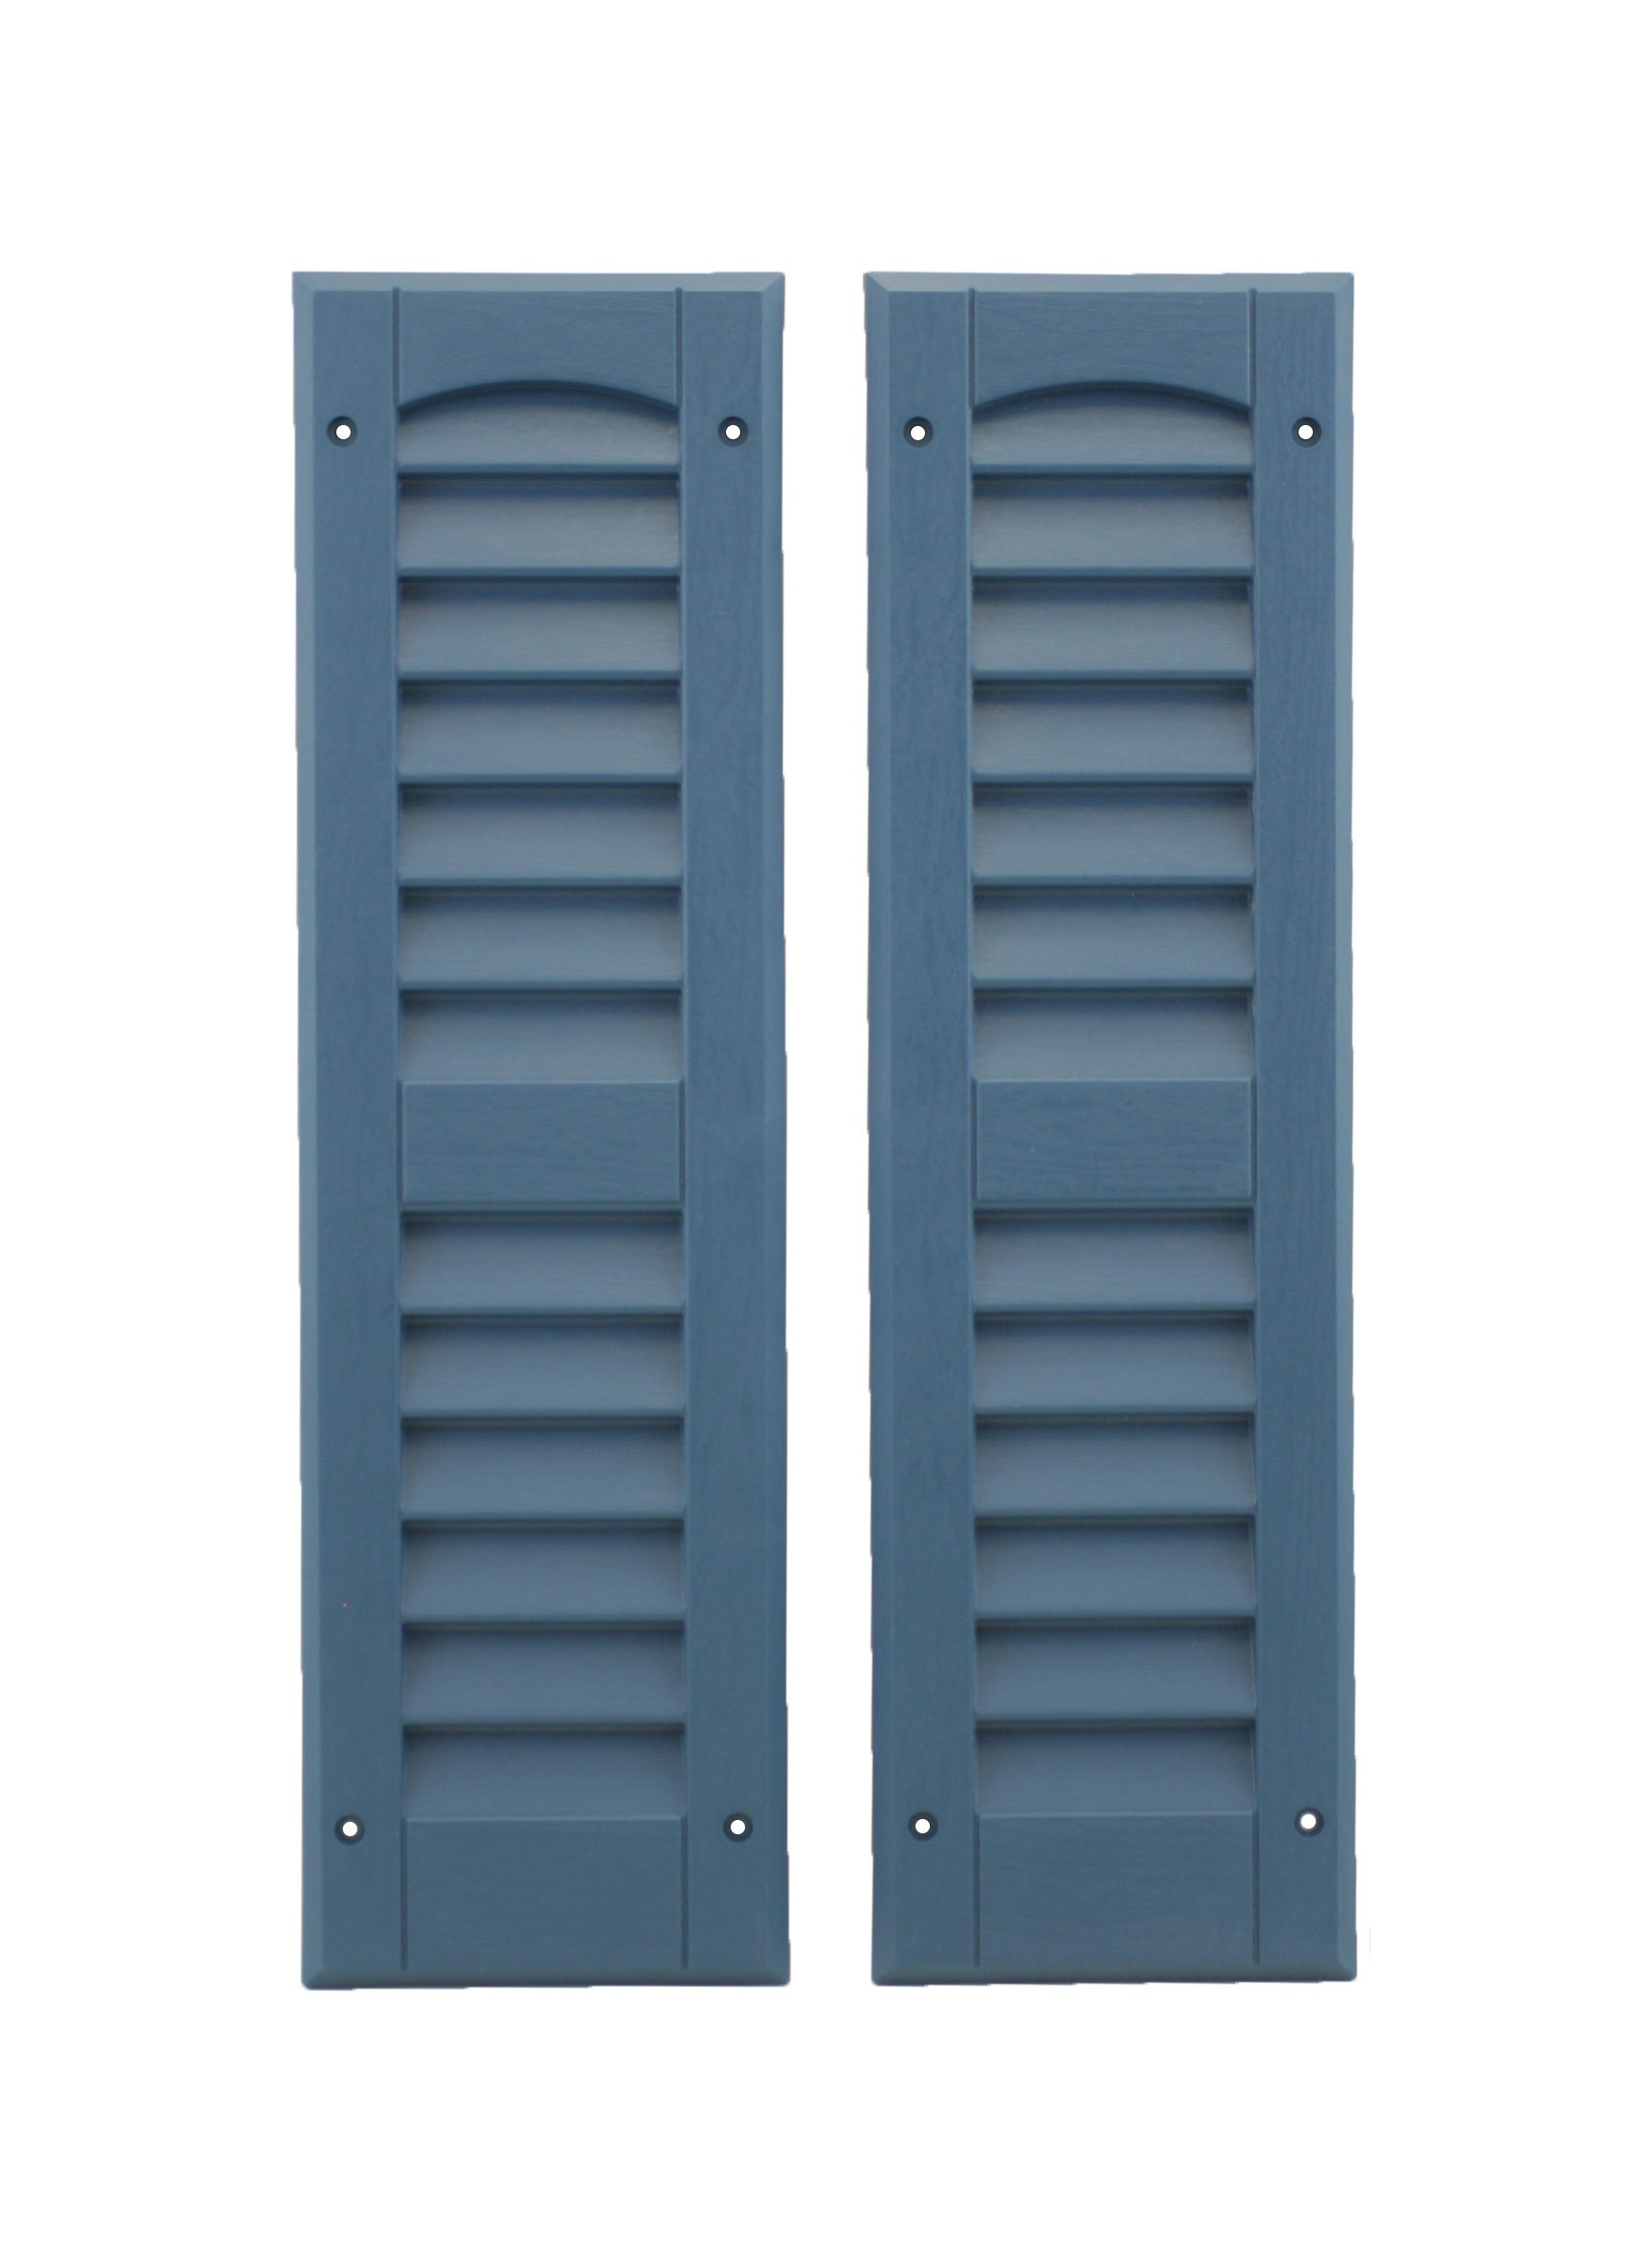 Louvered Shed or Playhouse Shutters Blue 1 Pair 6'' x 21''